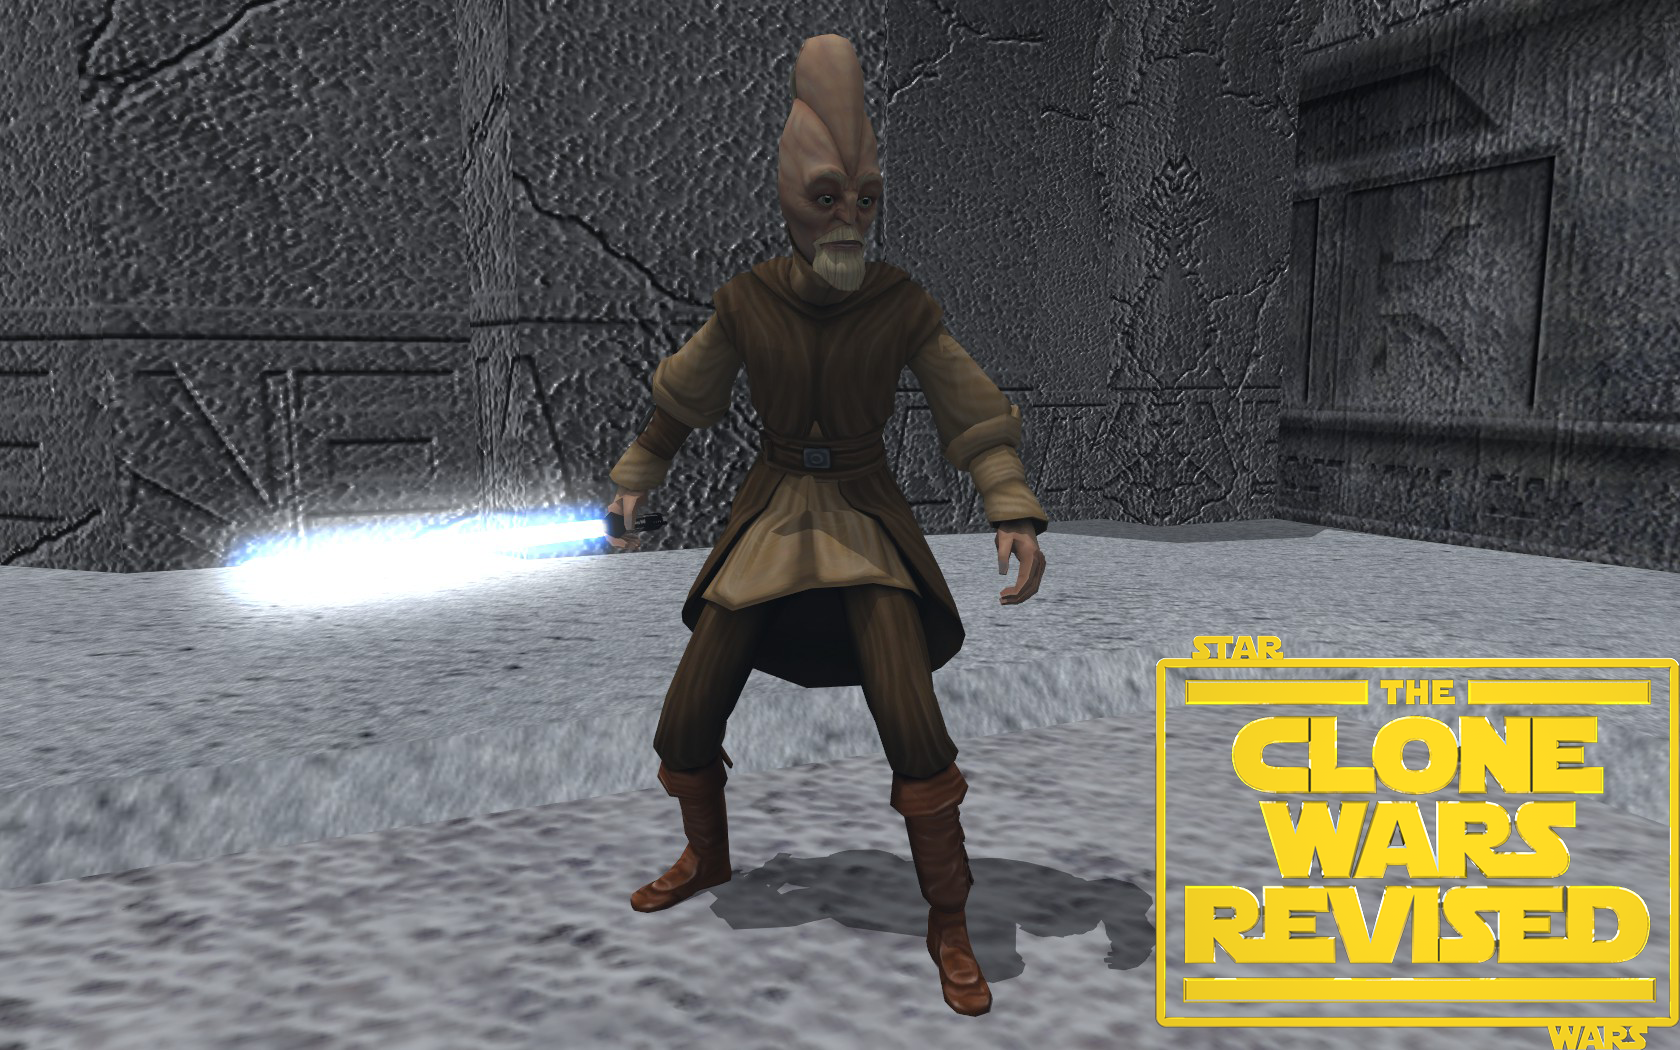 Ki Adi Mundi rigged by S1thK3n